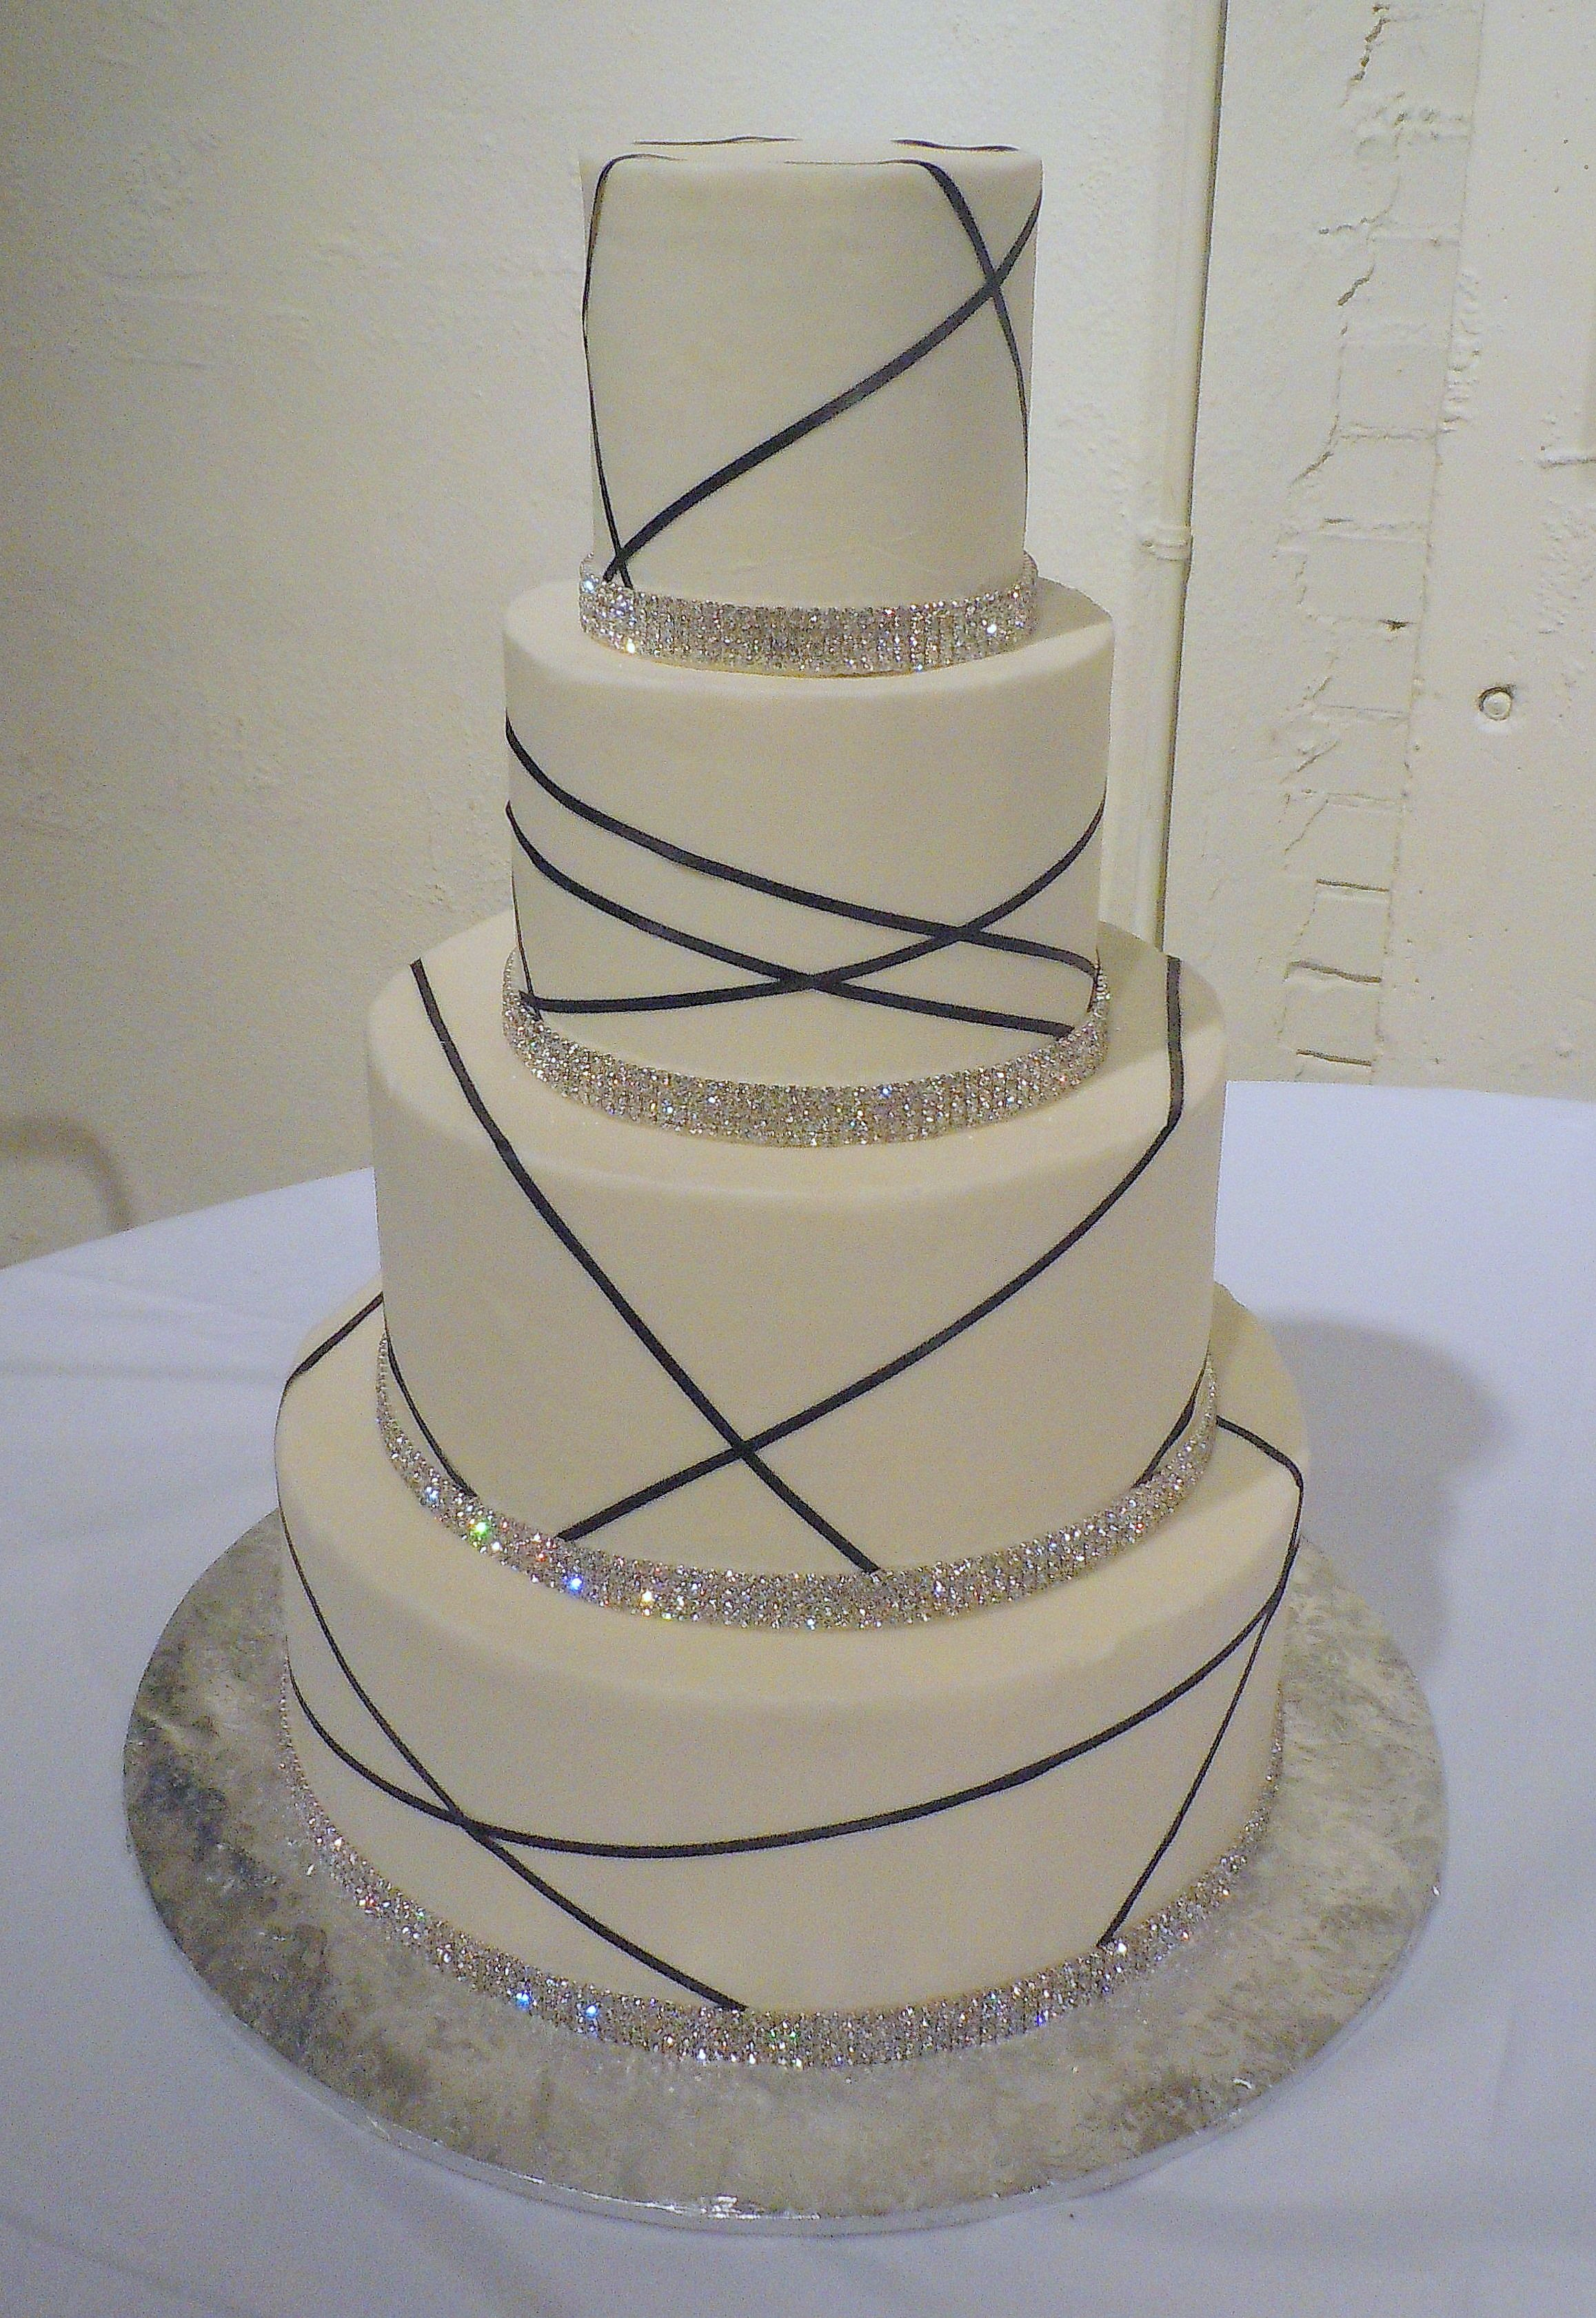 Louisville Kentucky Elegant Bling Wedding Cake From Sweet Surrender Dessert Cafe